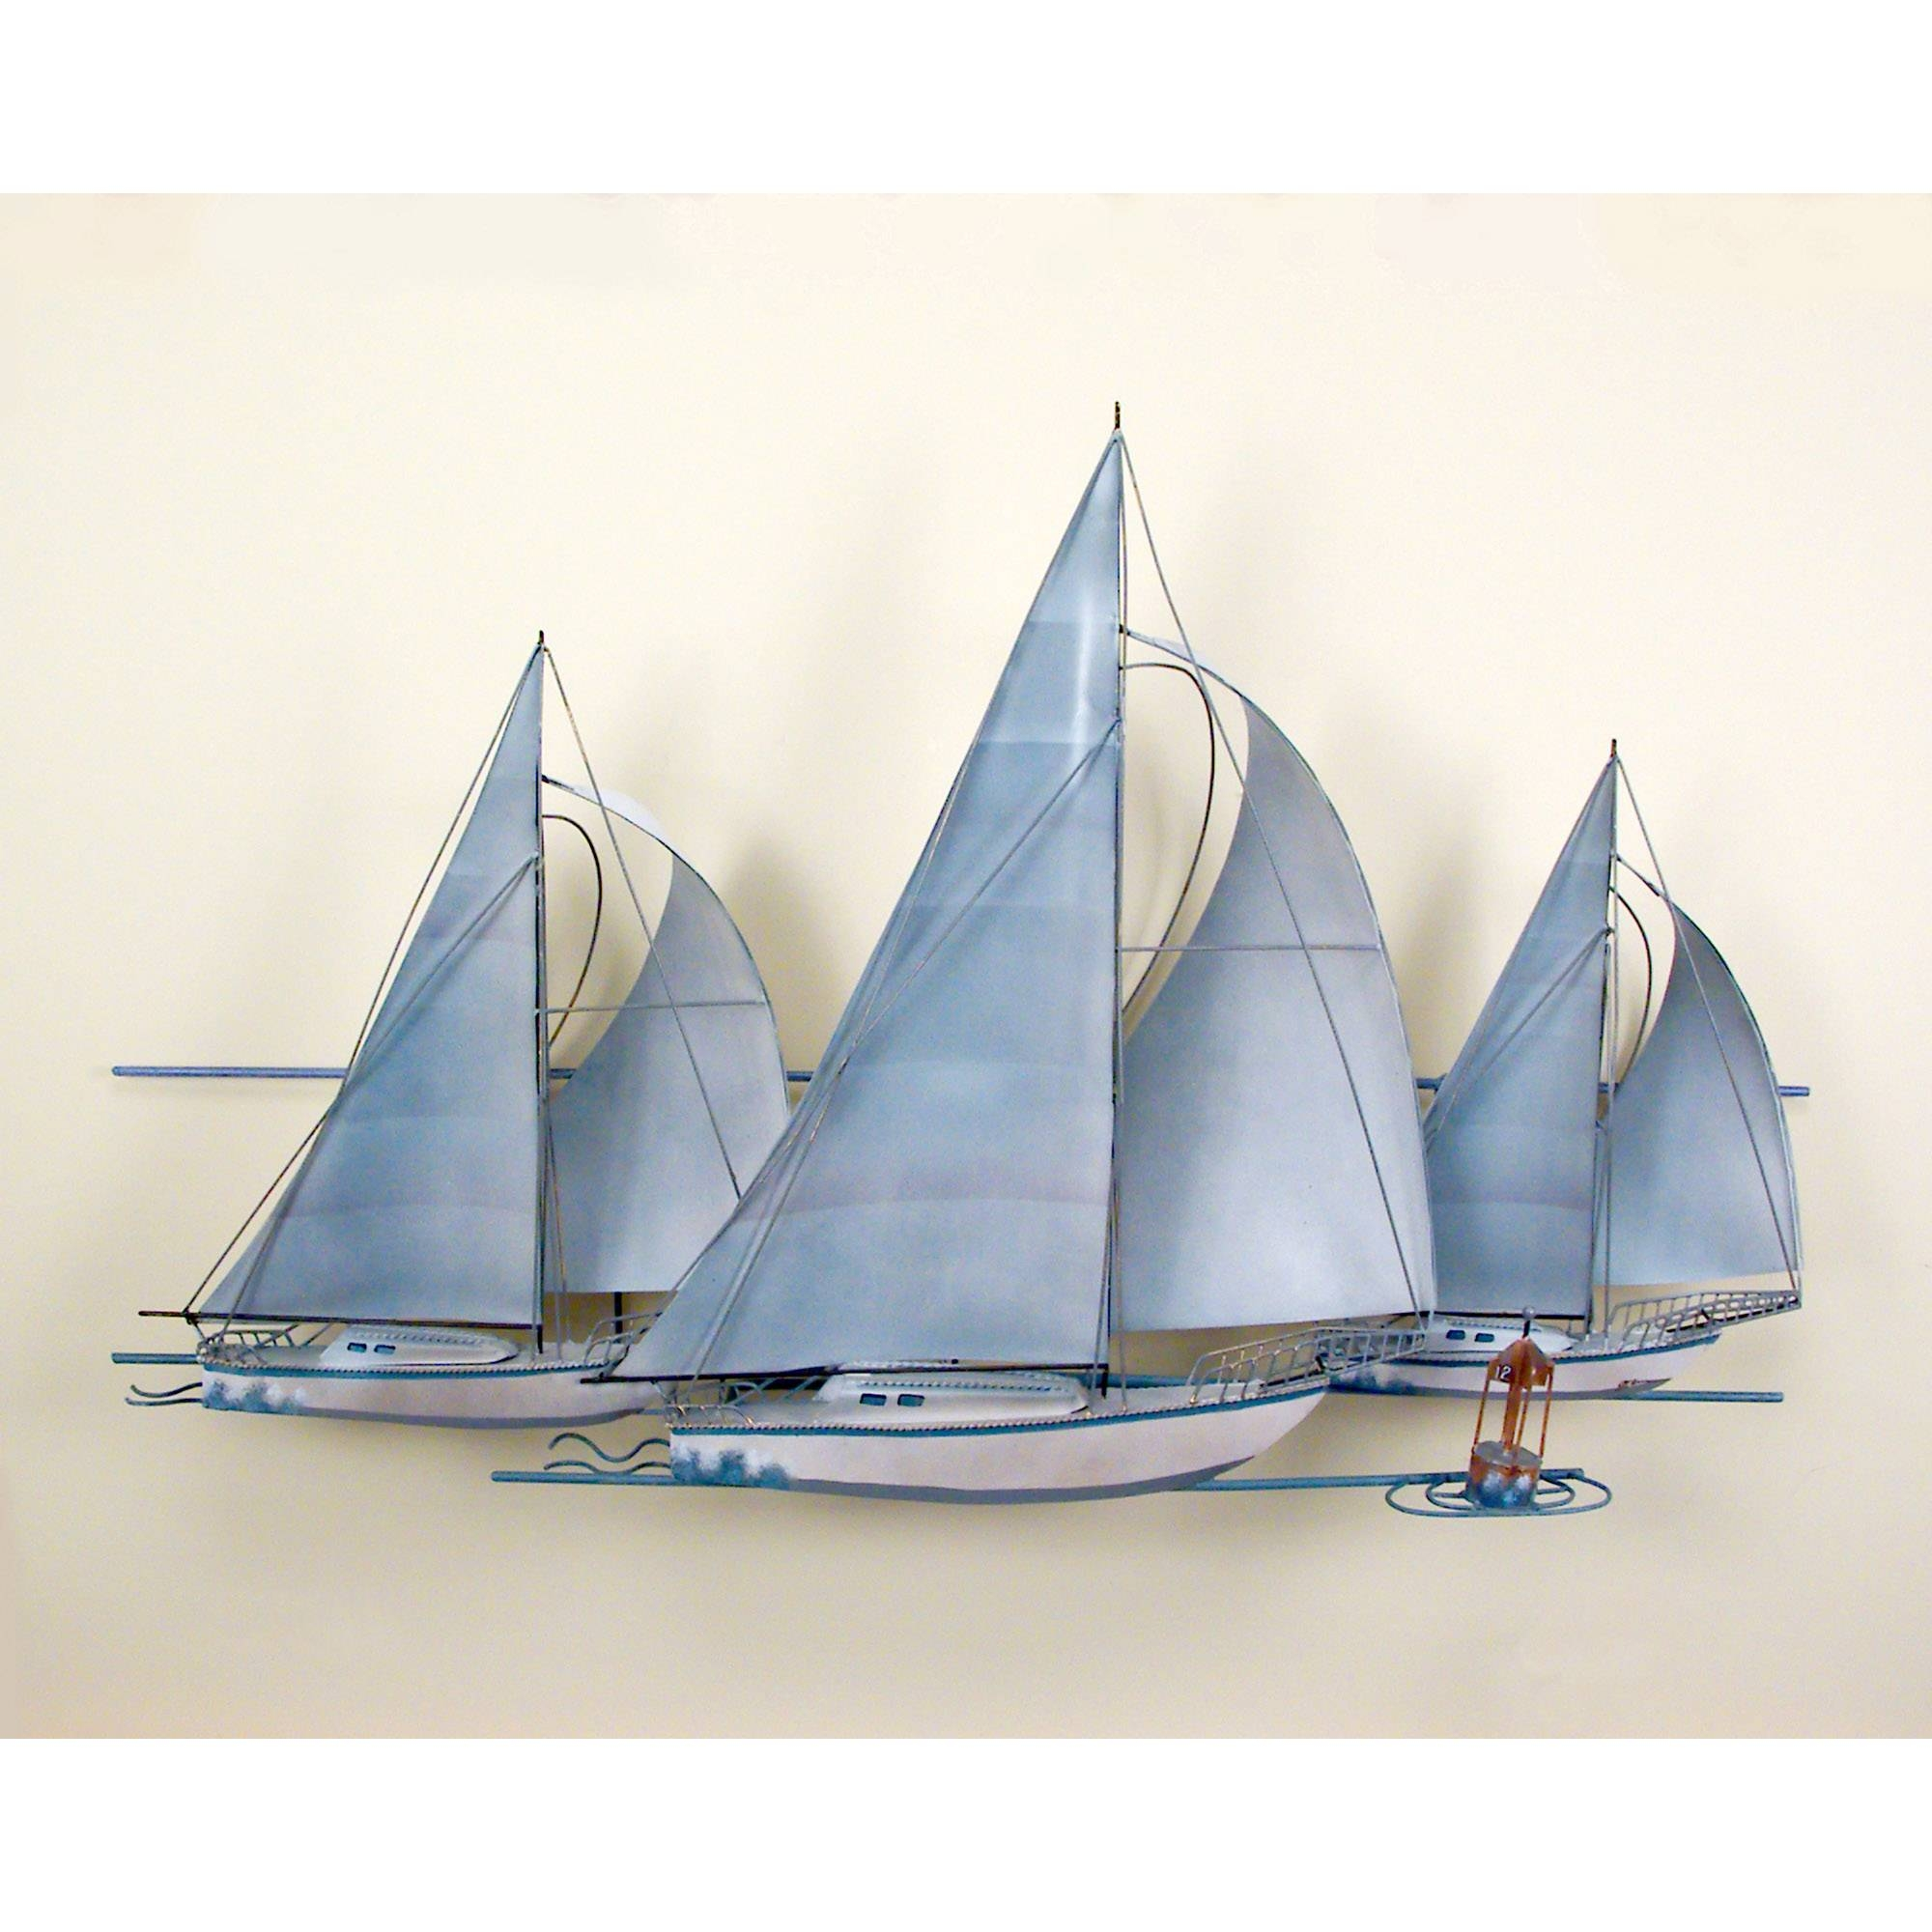 At The Races,three Sail Boats, Race, Wall Art, Wall Hanging Pertaining To Best And Newest Sailboat Metal Wall Art (View 8 of 30)